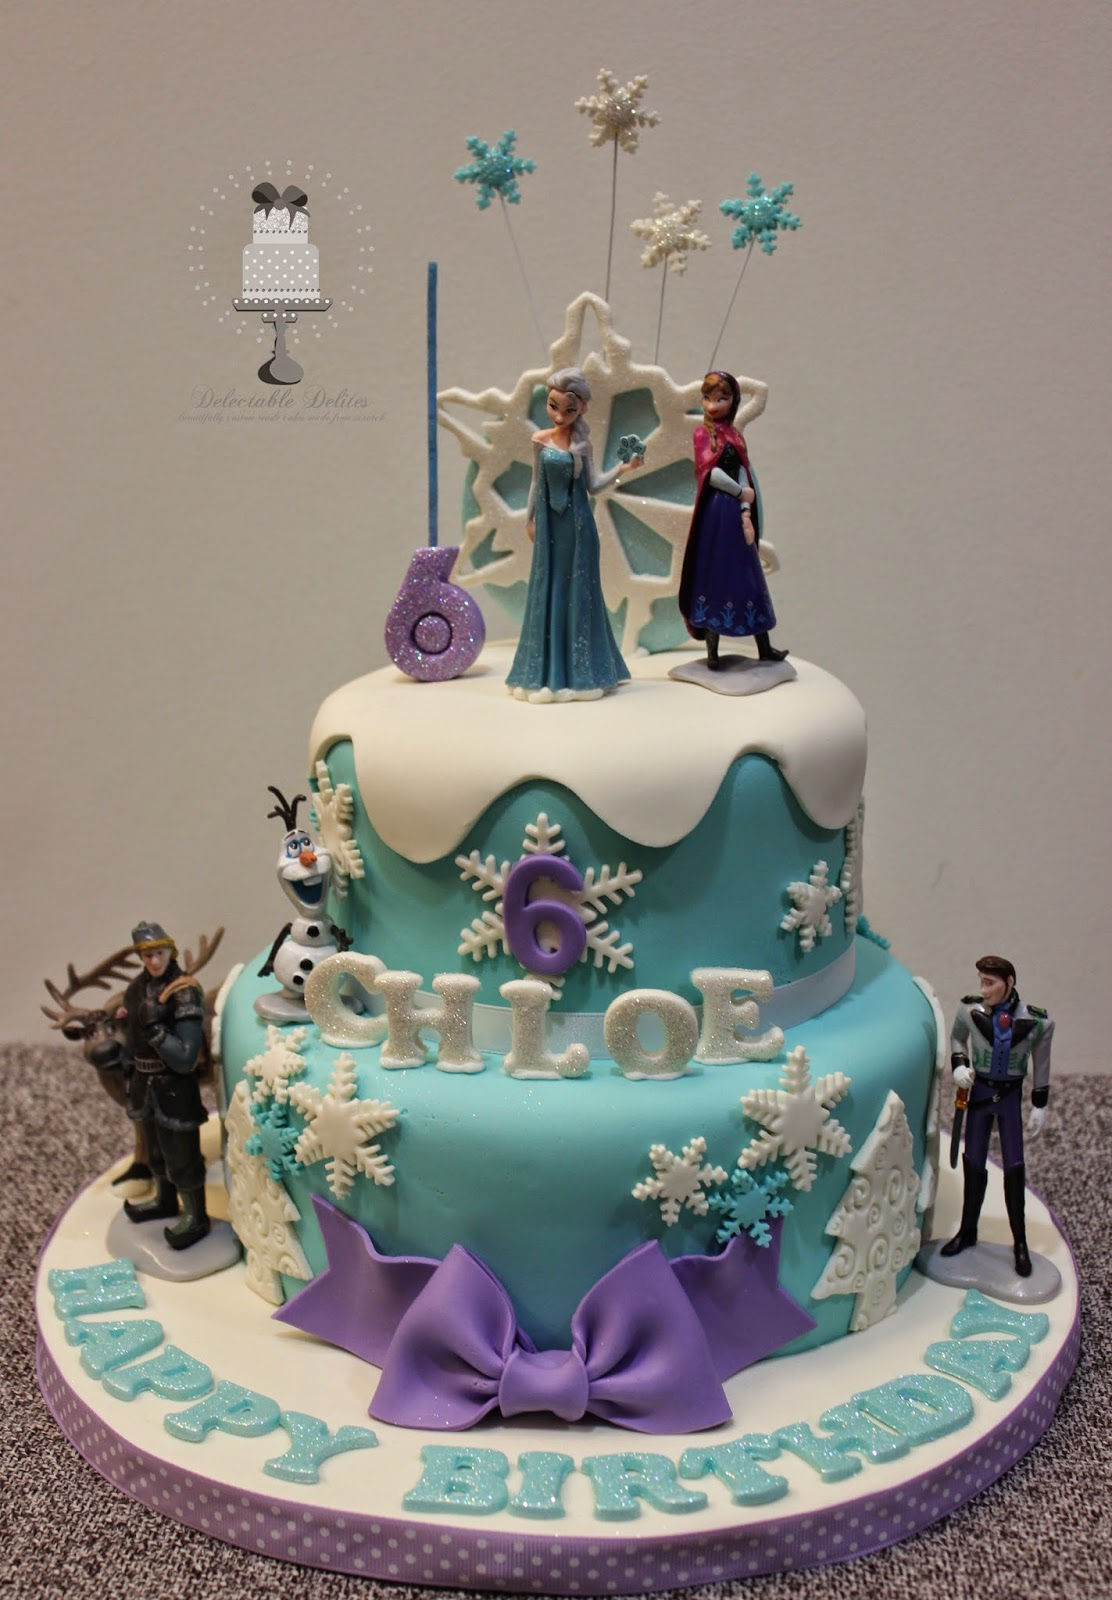 Delectable Delites Frozen Cake For Chole S 6th Birthday